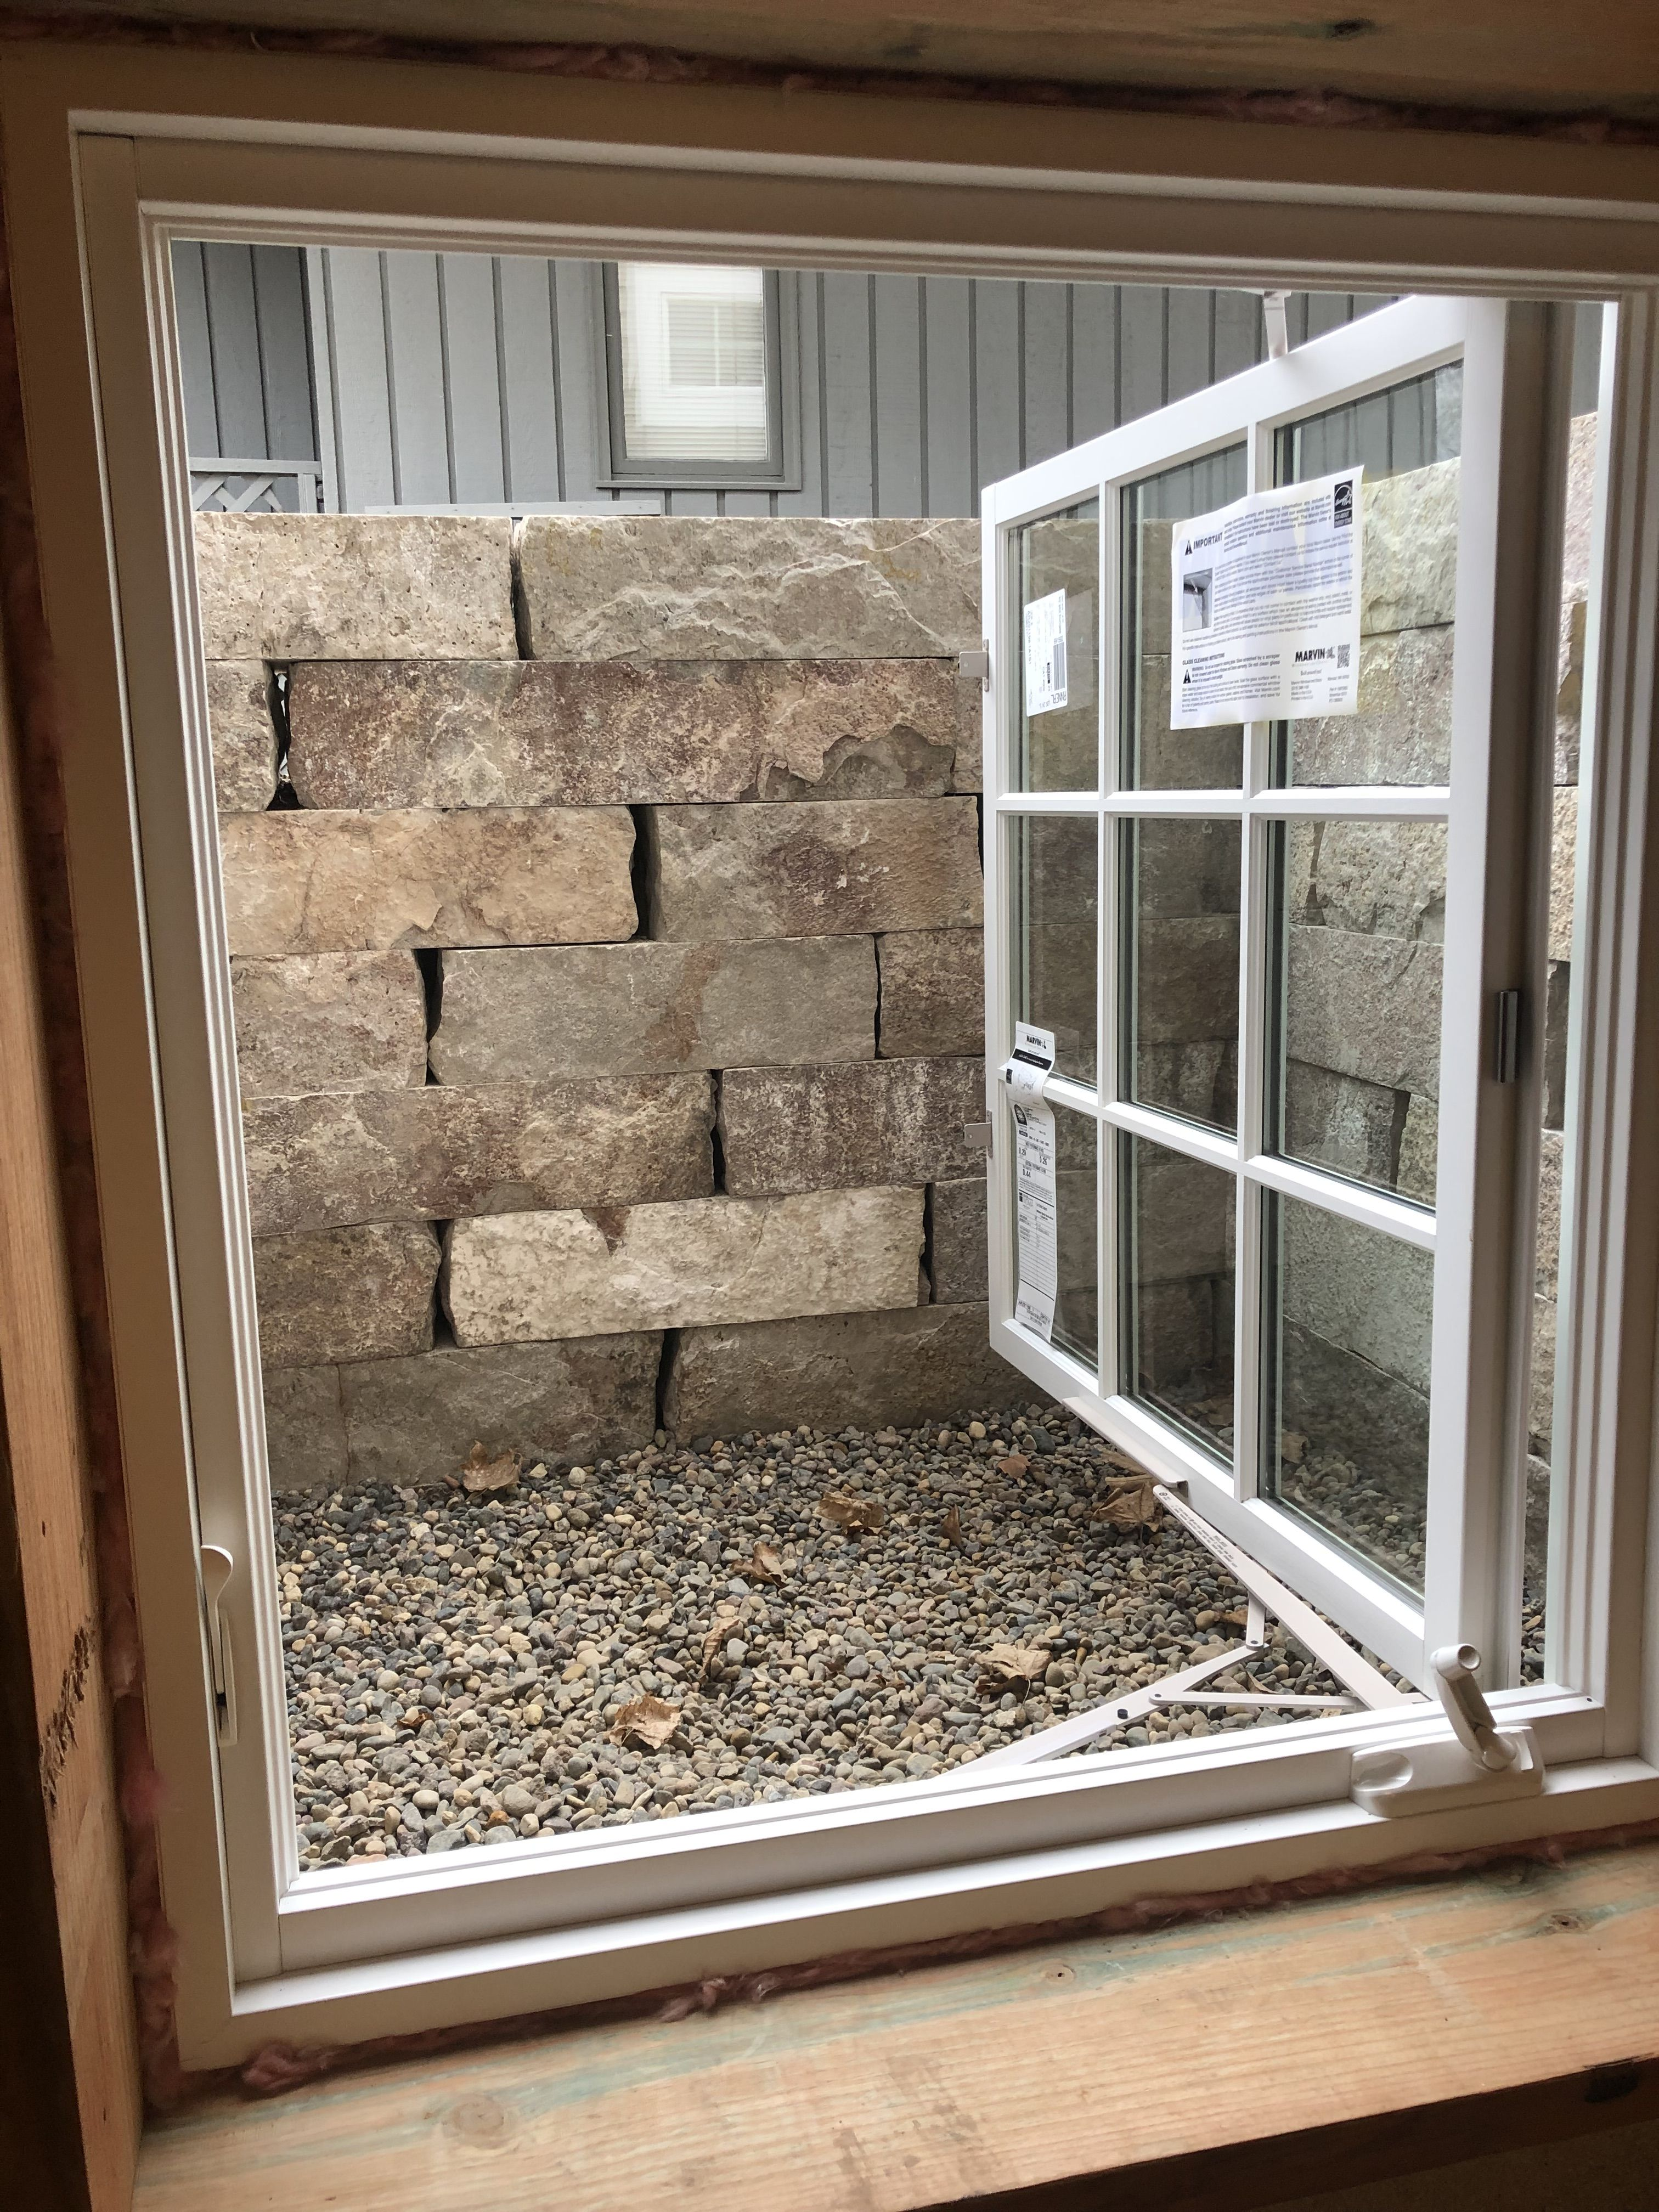 window well design ideas on natural stone egress window well egress window egress window well window well natural stone egress window well